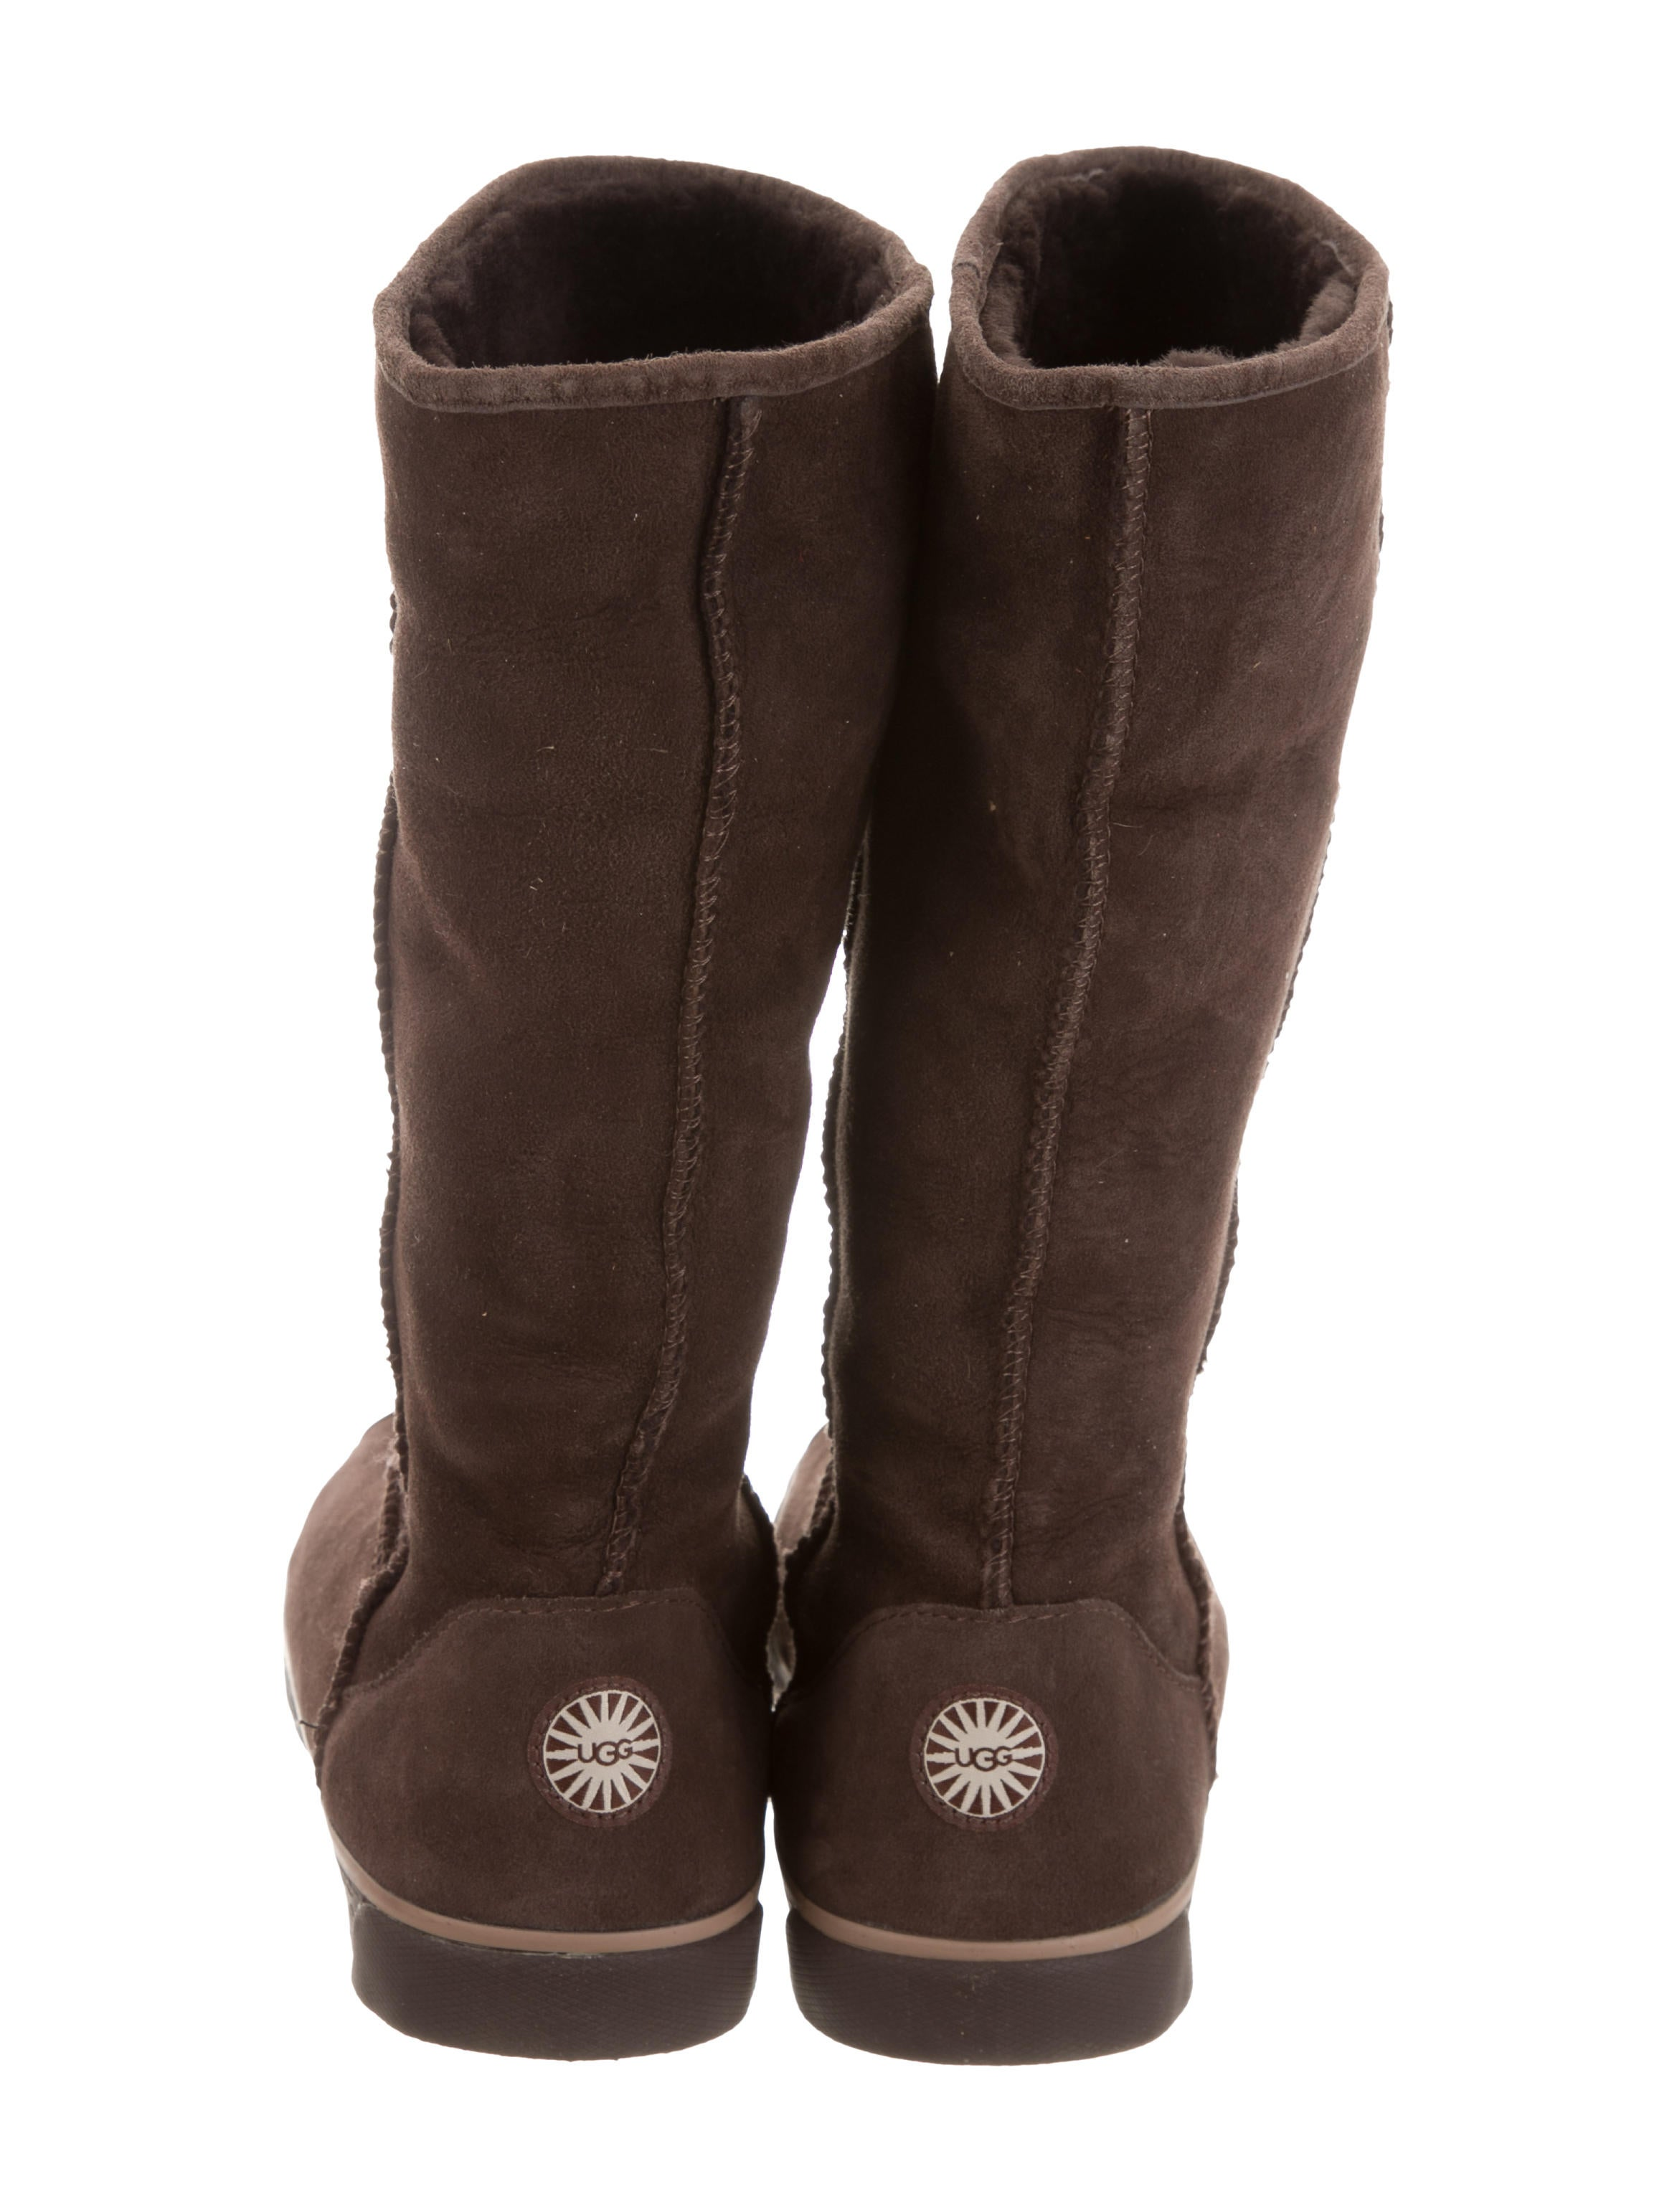 outlet locations cheap price UGG Australia Delaine Mid-Calf Boots discount sale sale how much BoUpYAv